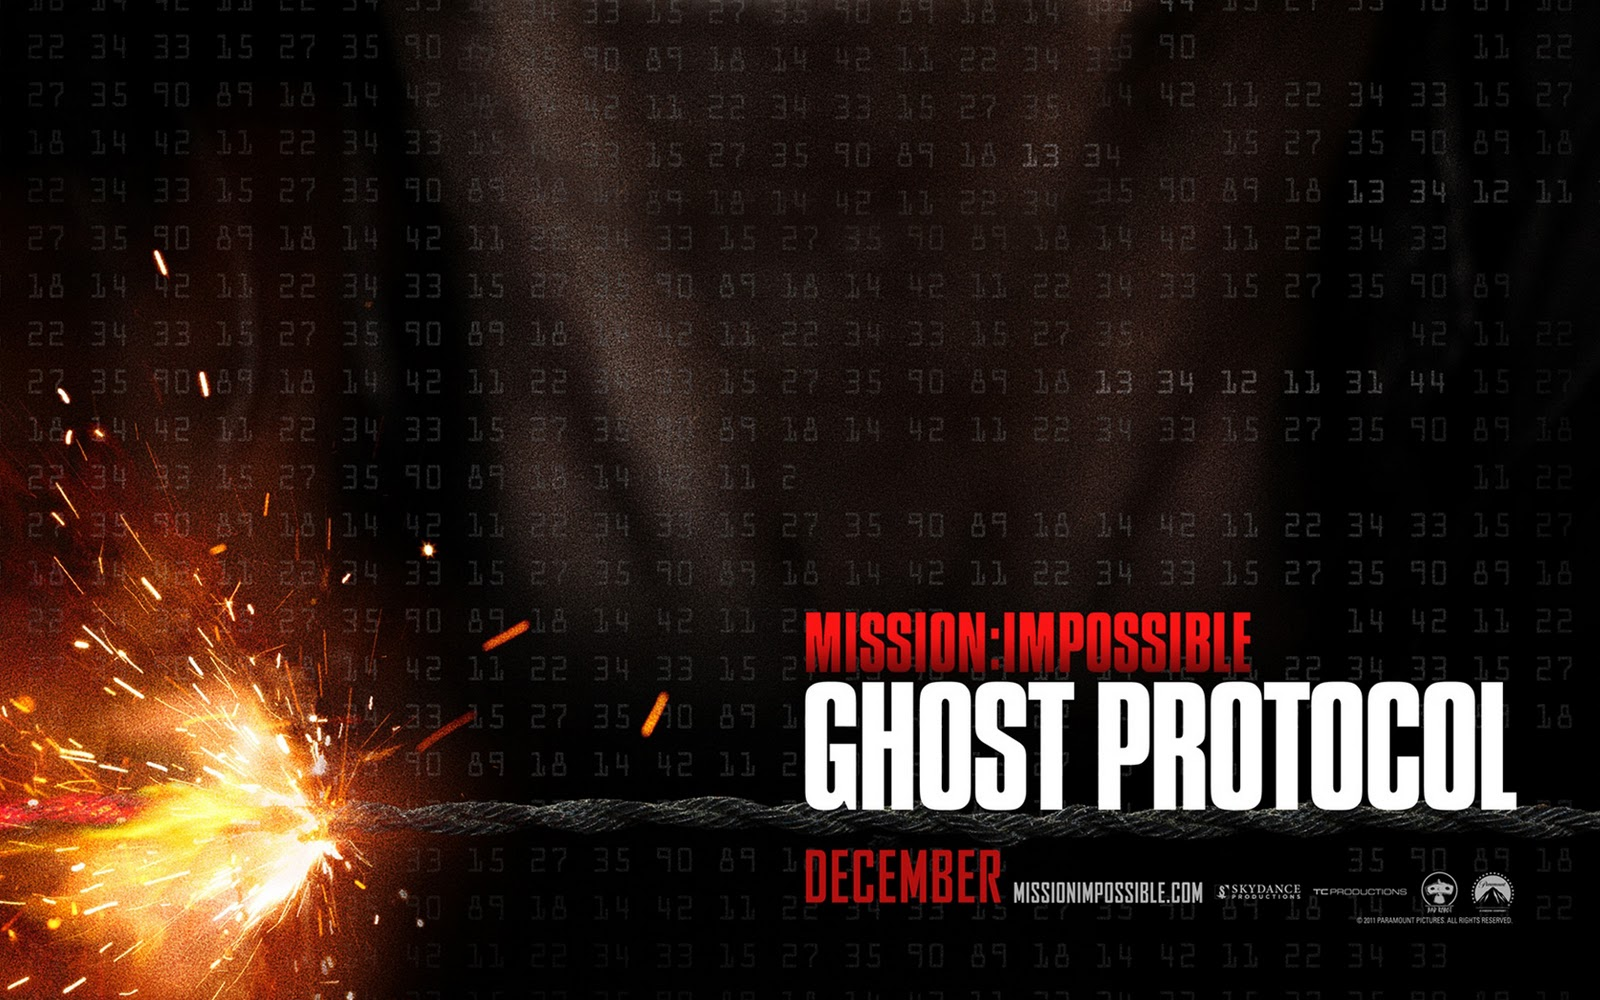 Qq wallpapers mission impossible 4 ghost protocol wallpapers - Mission impossible wallpaper ...